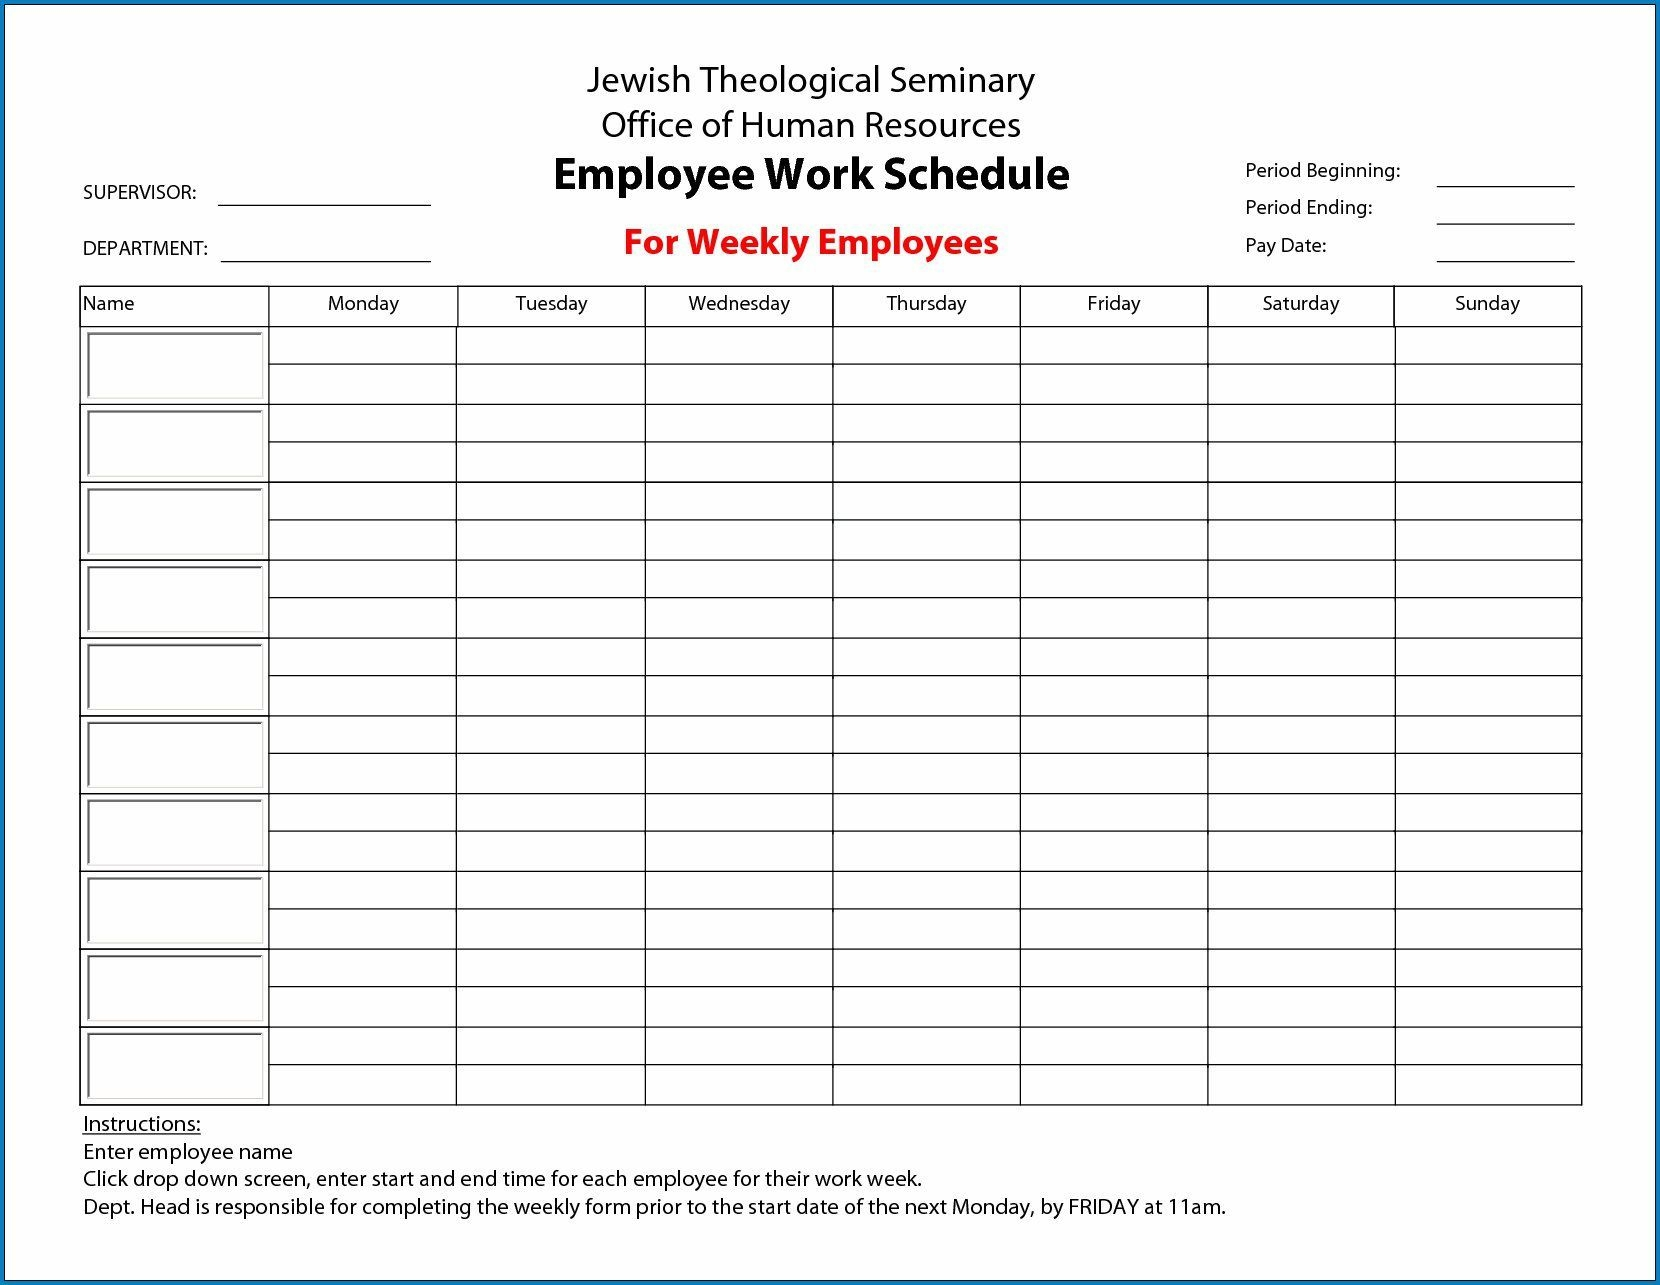 009 Fascinating Employee Schedule Template Free Image